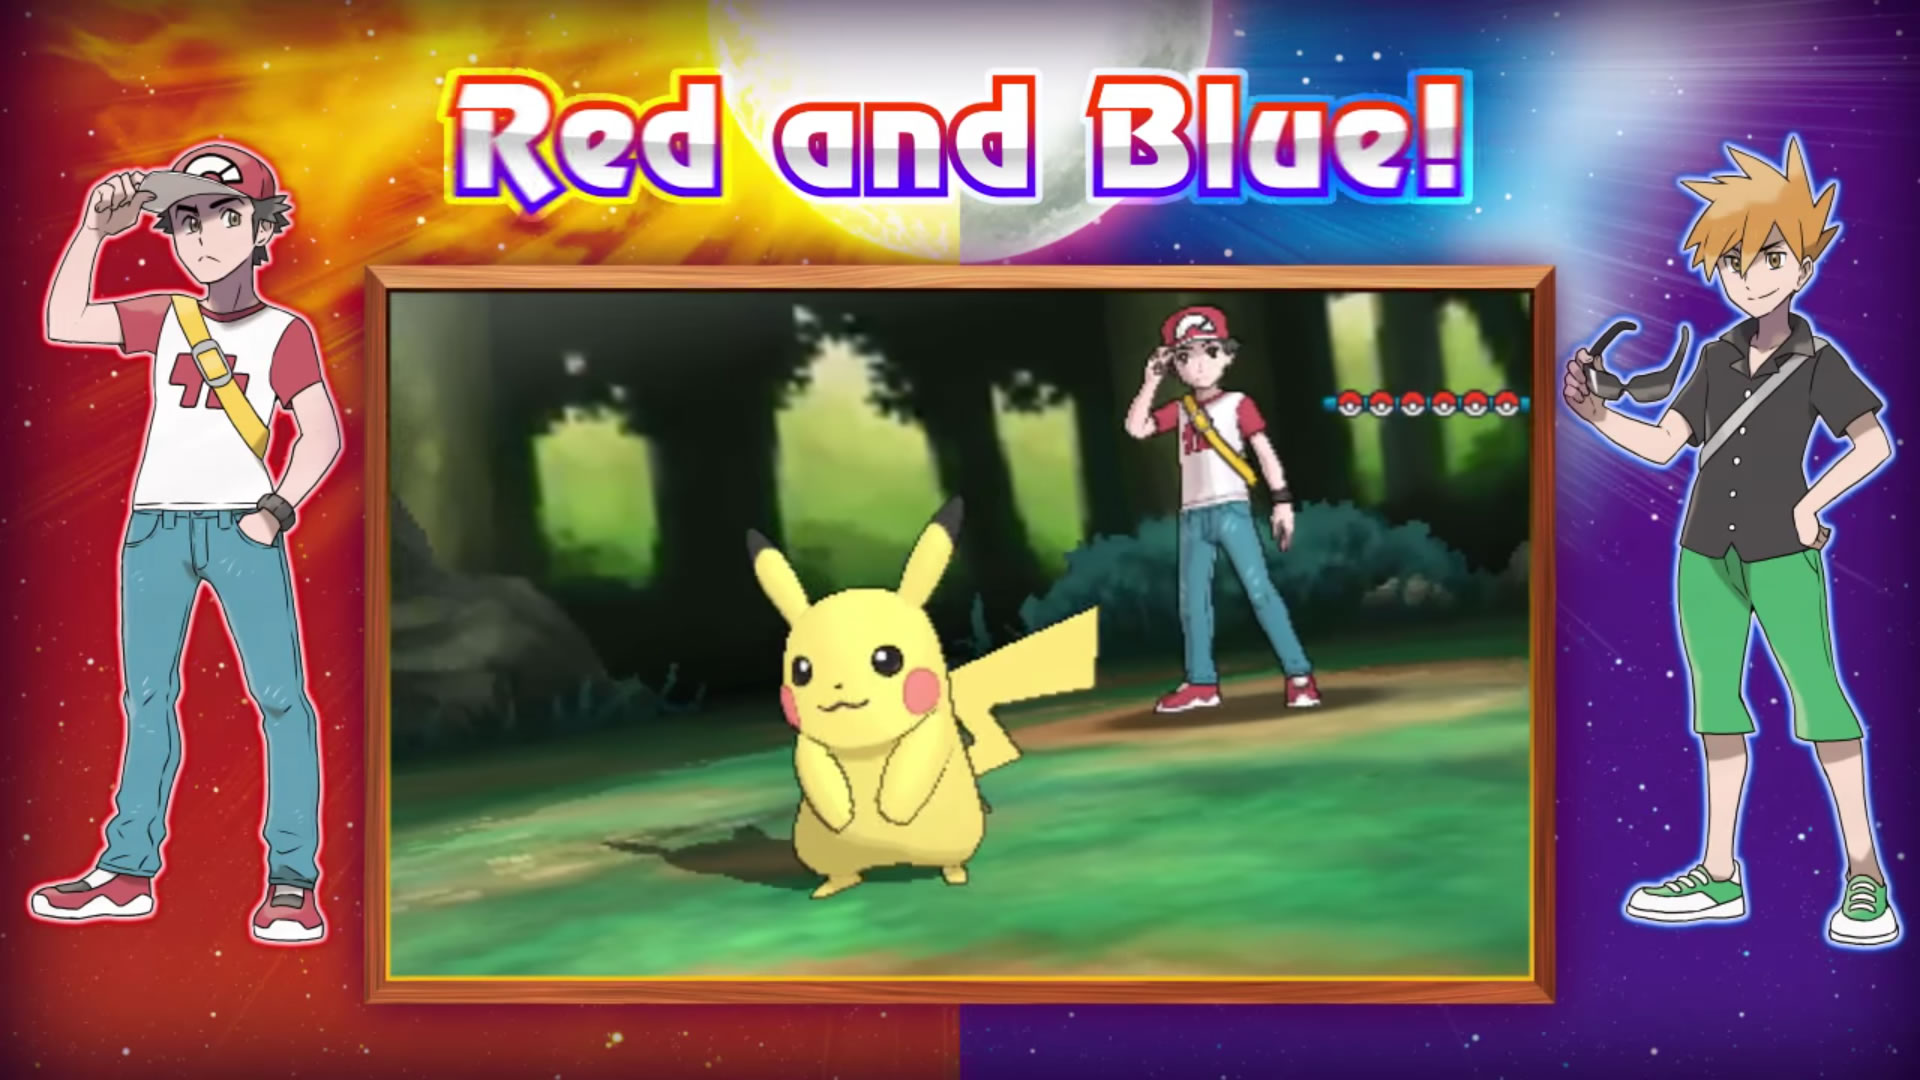 Pokemon Sun Moon Guide Facing off against Red and Blue to gain 1920x1080